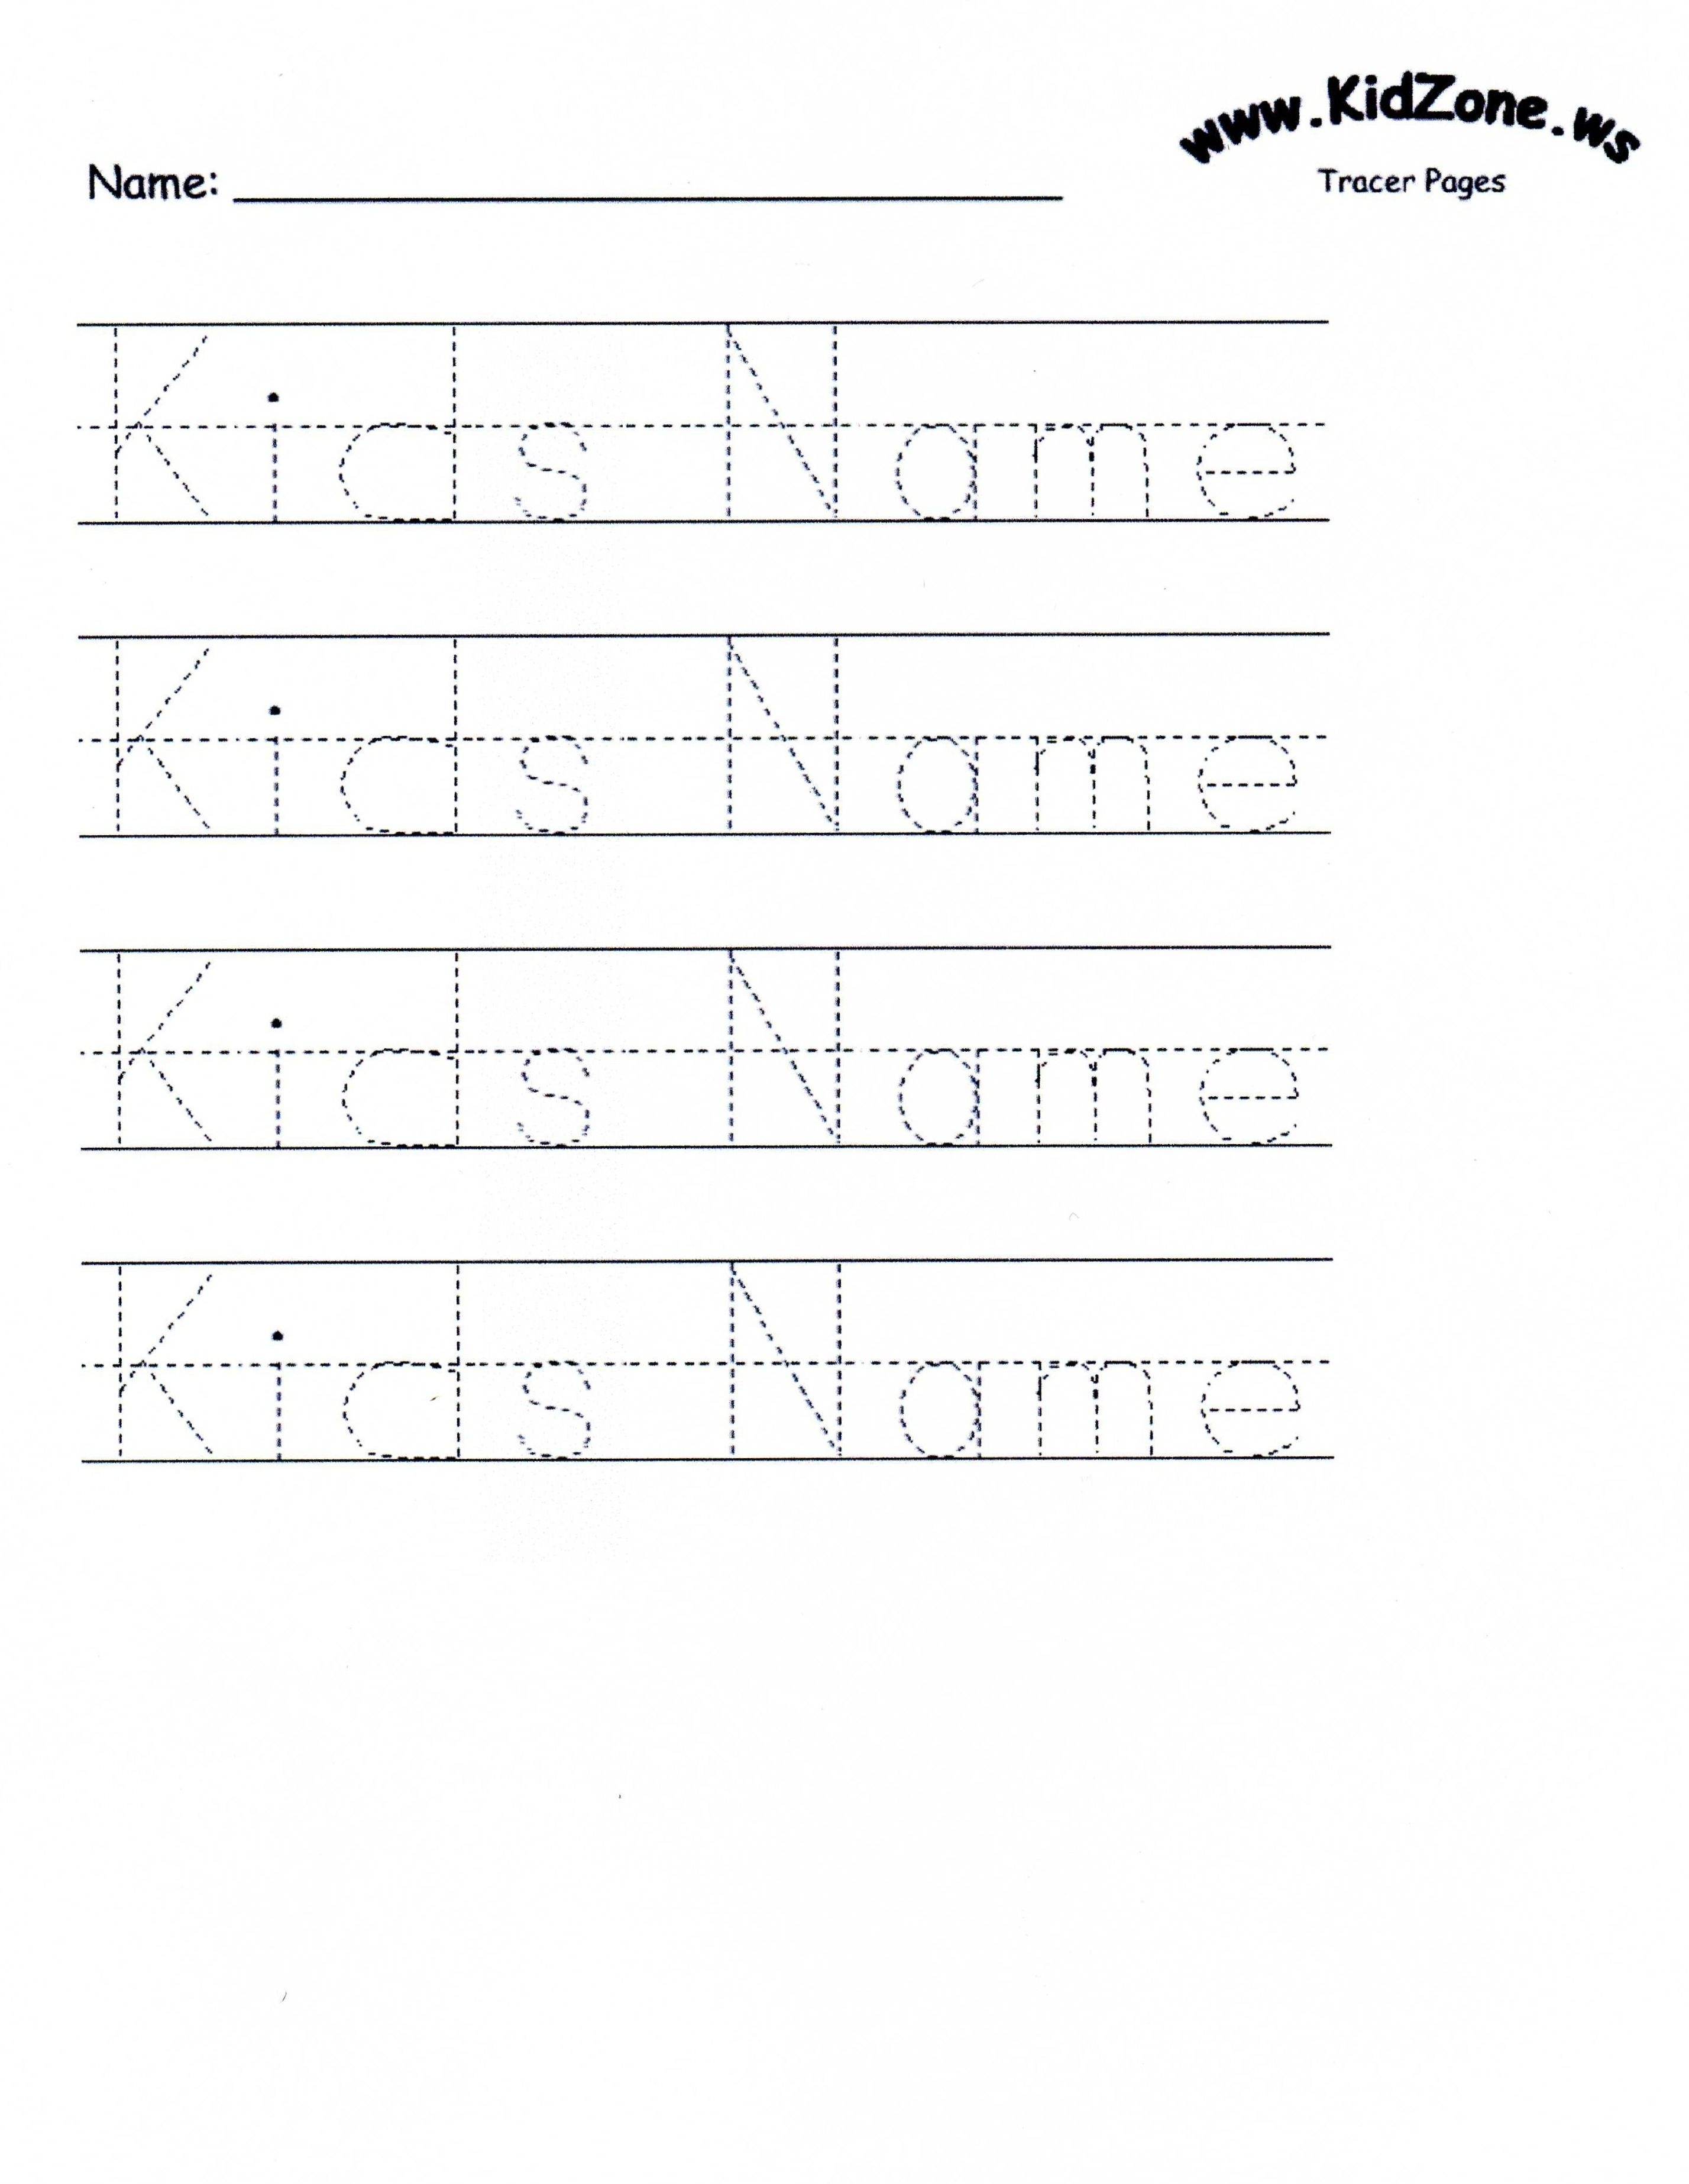 Customizable Printable Letter Pages   Teaching Mackenzie And Juliana - Free Printable Preschool Name Tracer Pages